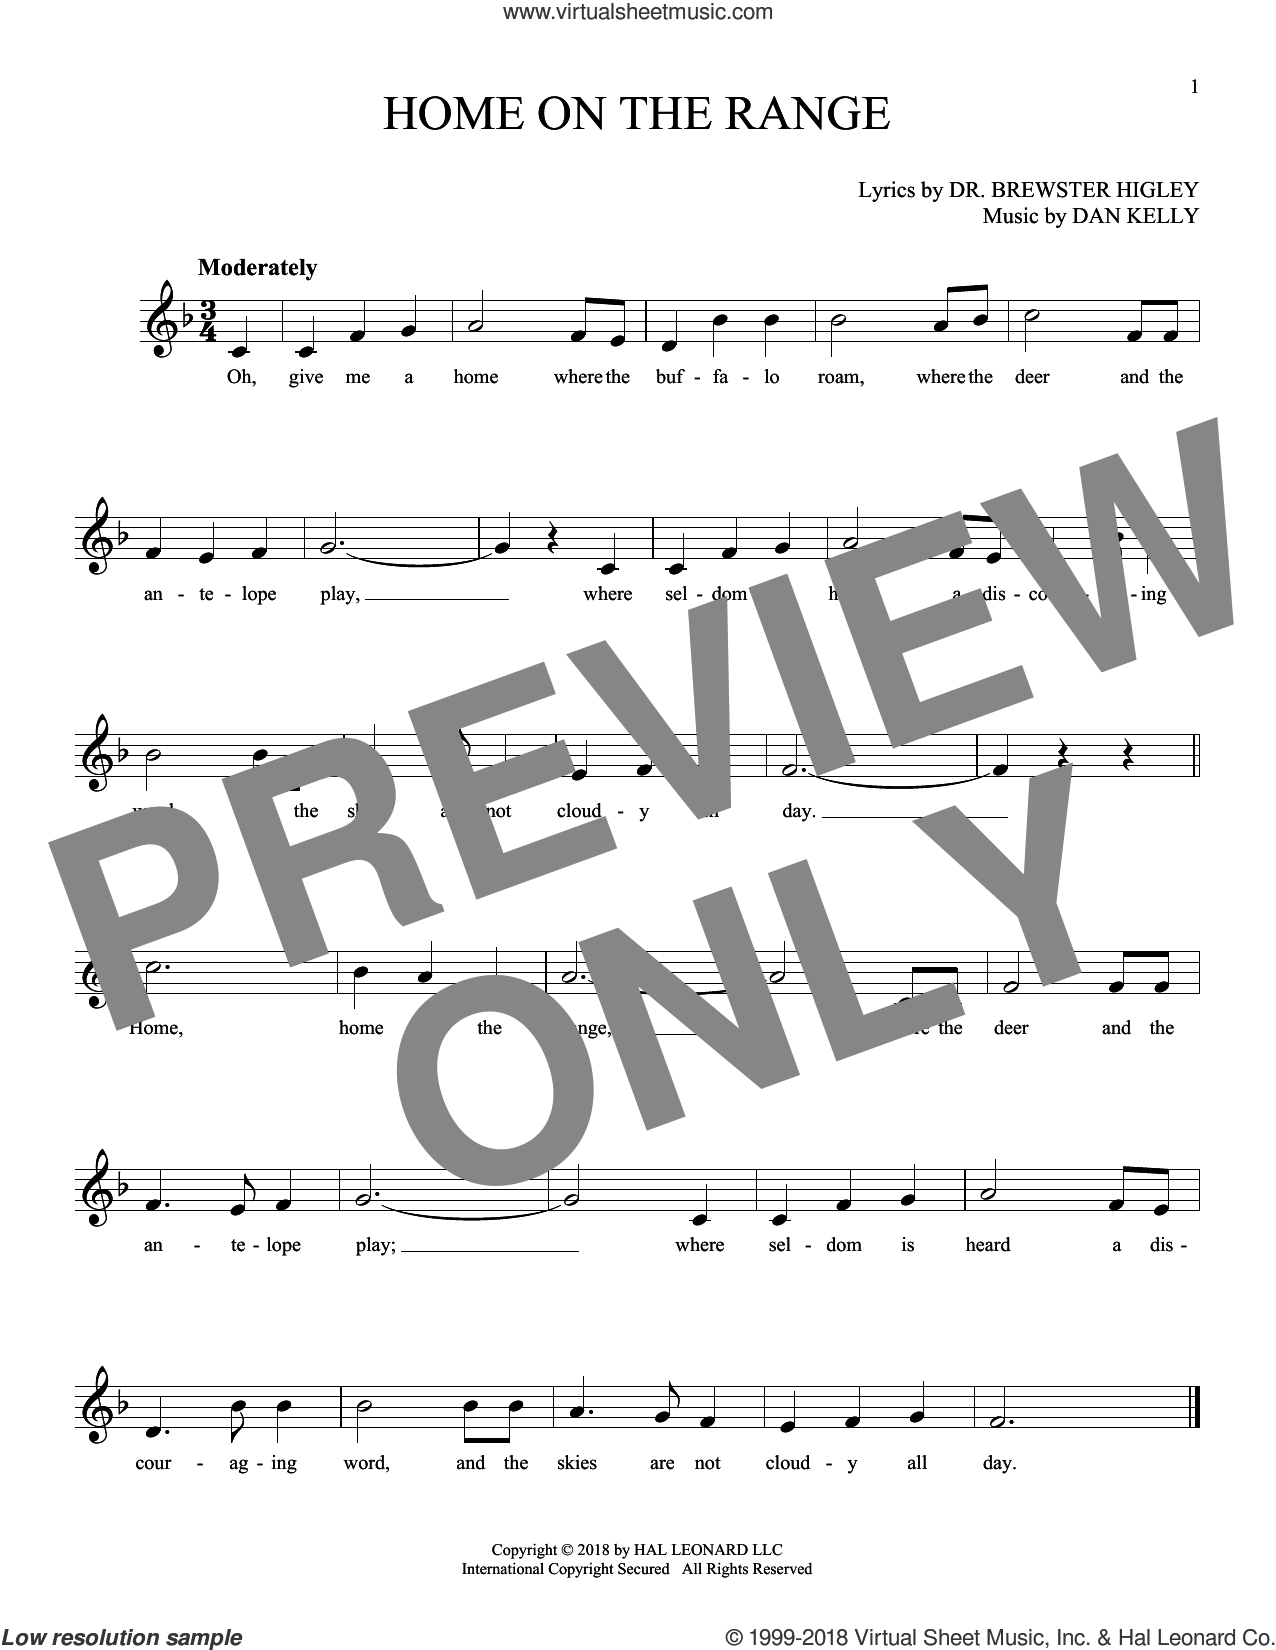 Home On The Range sheet music for ocarina solo by Dan Kelly and Dr. Brewster Higley, intermediate skill level